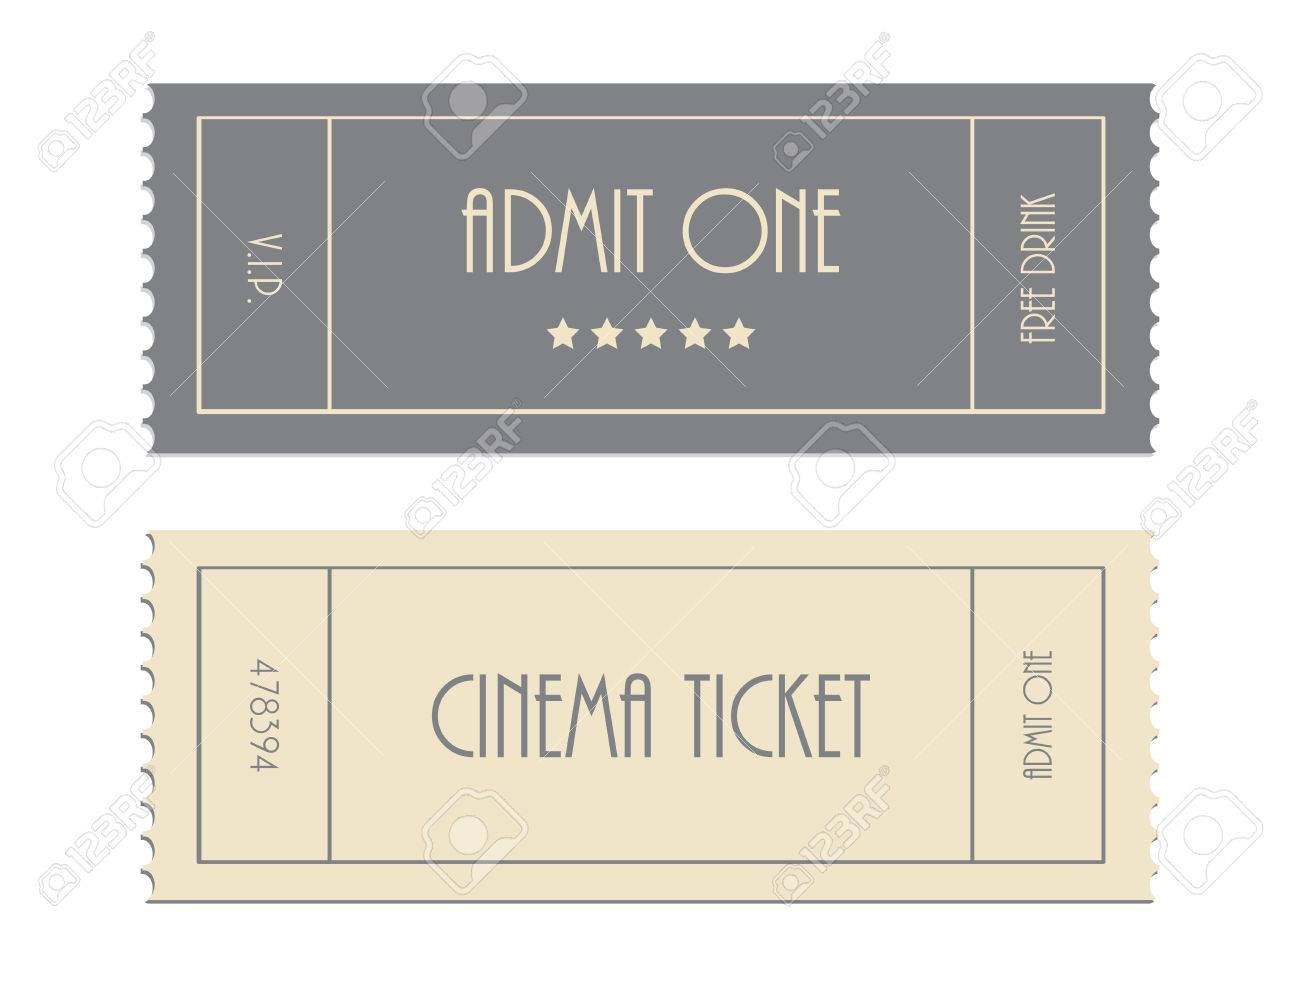 Special Vector Ticket Template, Admit One, Cinema Ticket Royalty ...